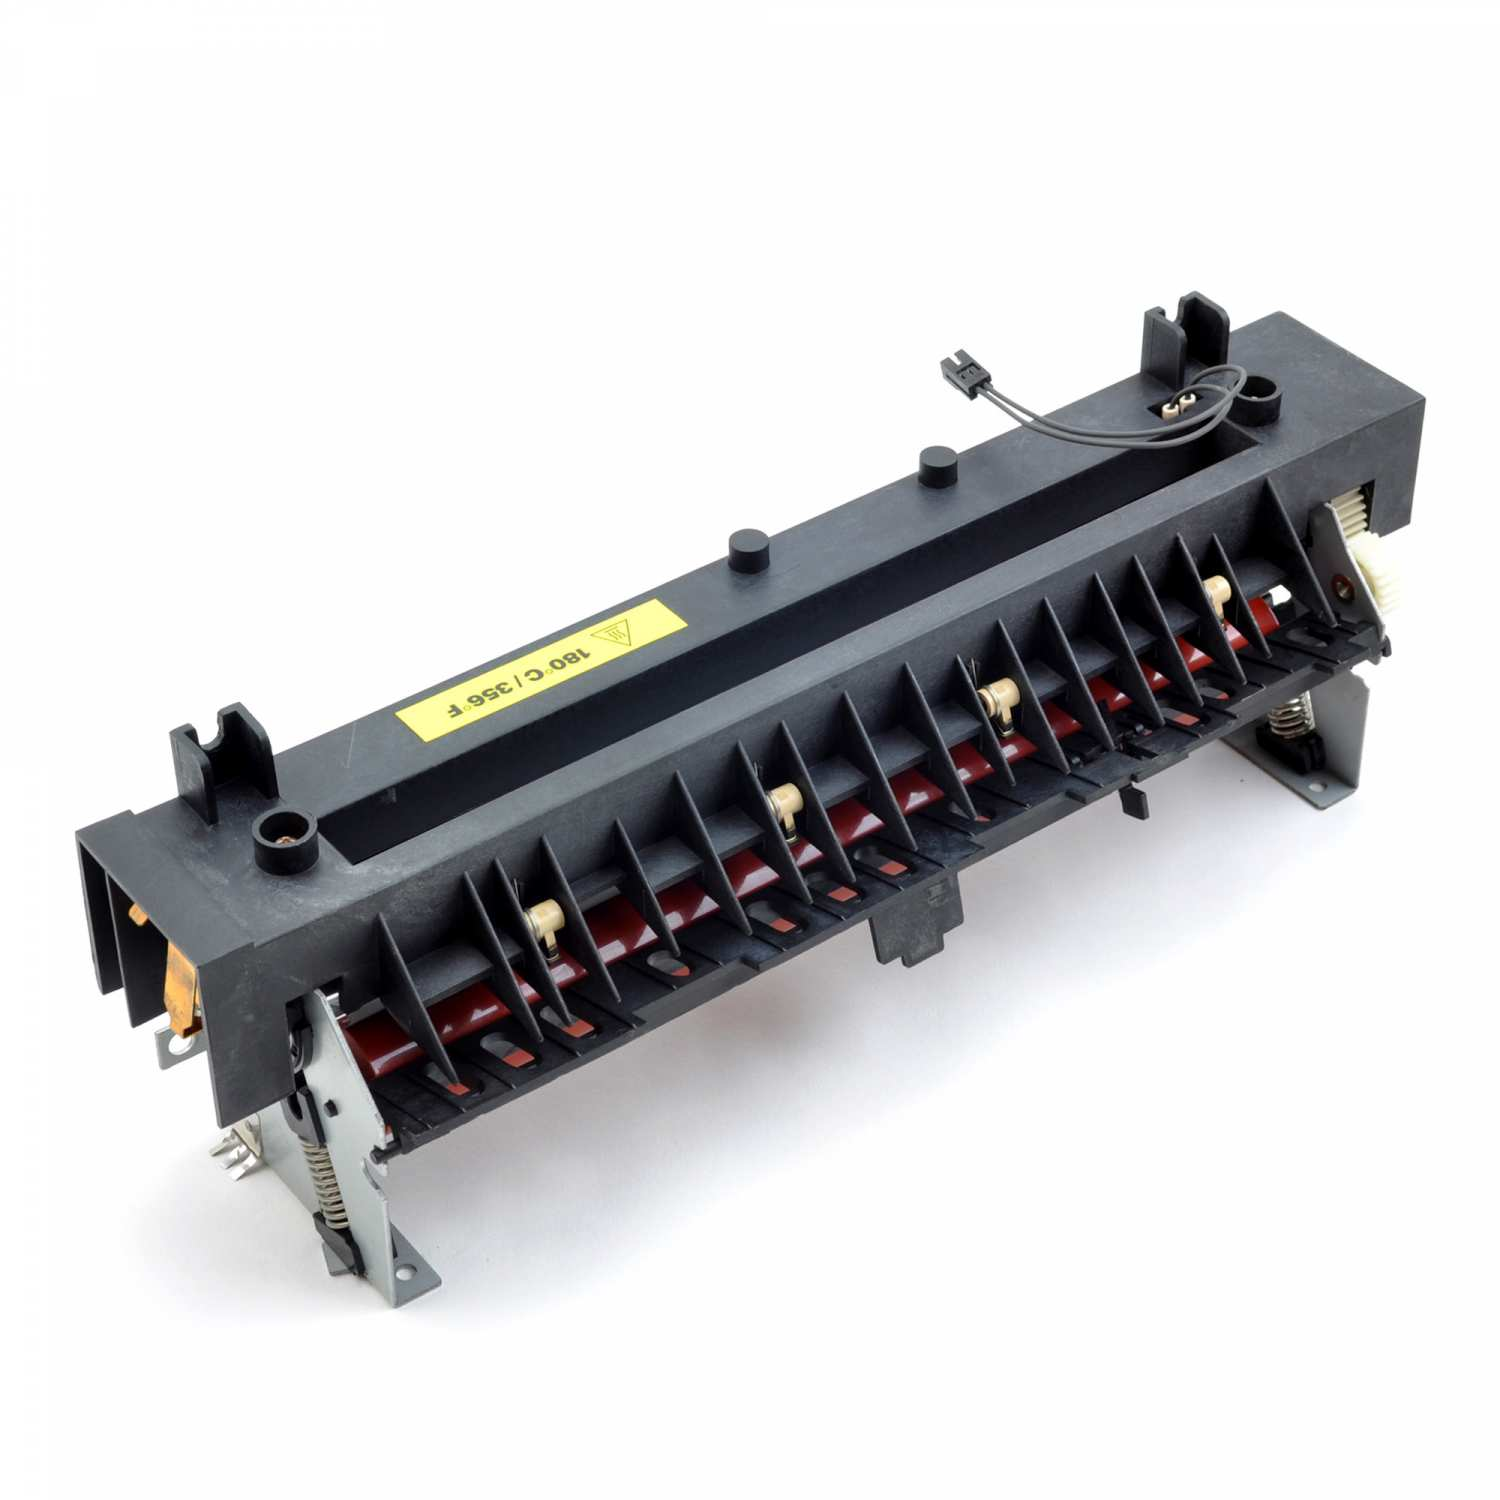 12G3982 Fuser Assembly (110V) - M410 Purchase for Lexmark Optra M41x